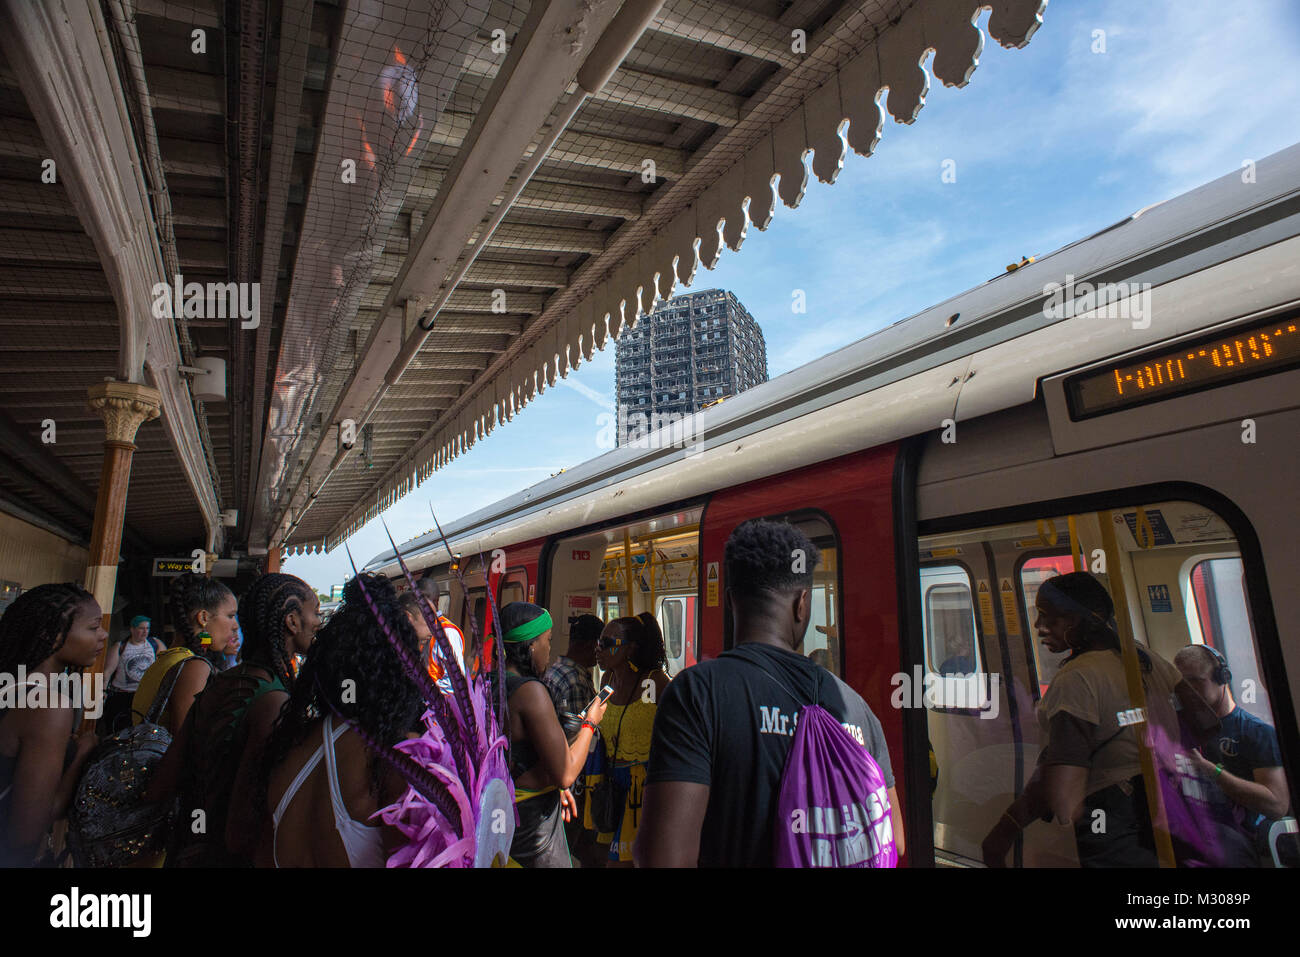 London, United Kingdom. Grenfell Tower, Latimer Court station. - Stock Image